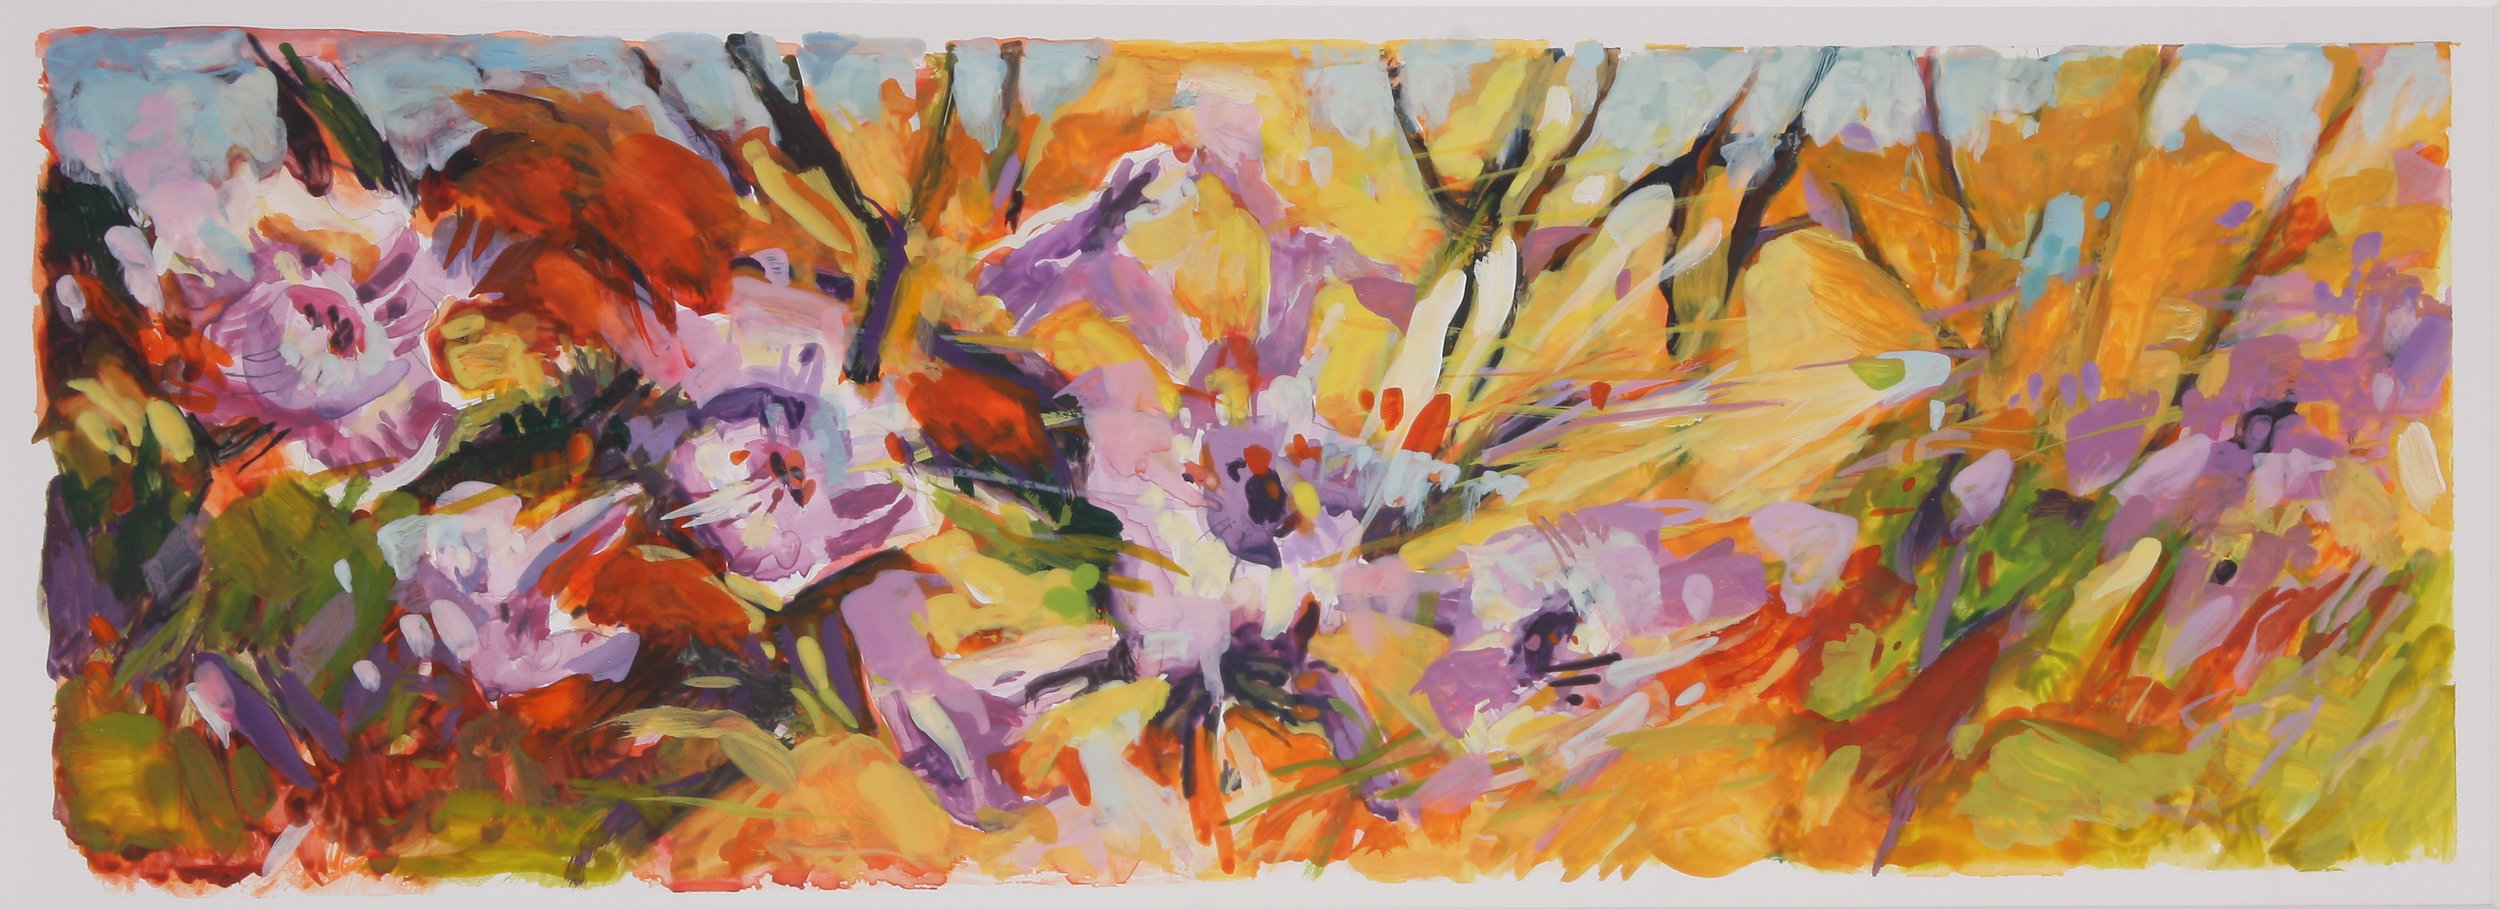 "After the Fires - Poodle Dog Bush 5"" x 15.5"" Gouache on Yupo"